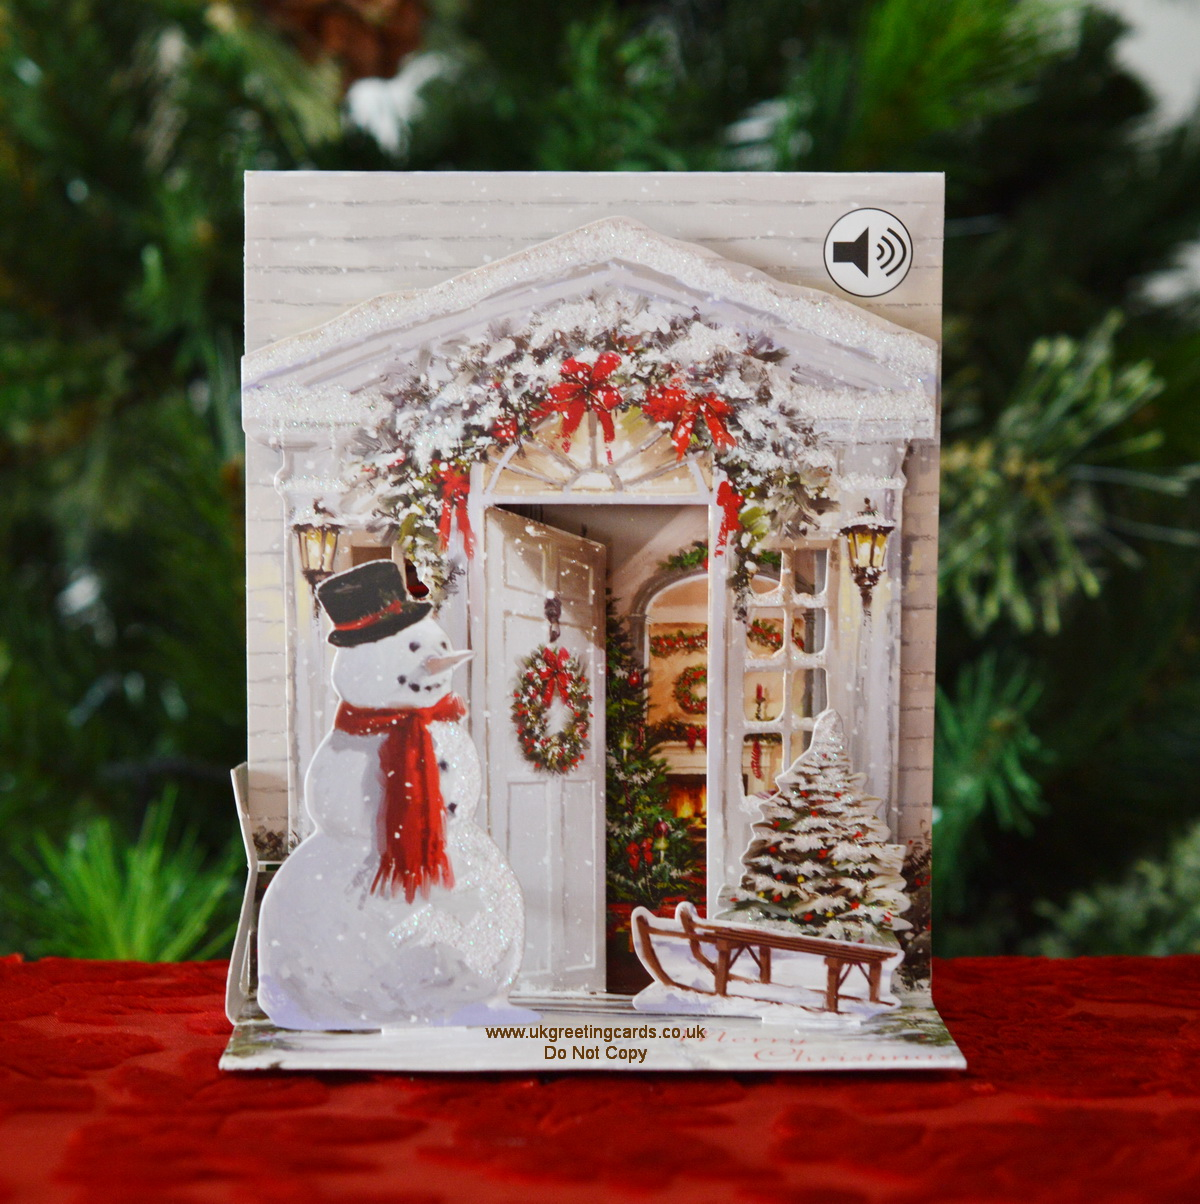 Handmade Greeting Cards Blog: Christmas Pop Up Cards New For 2012